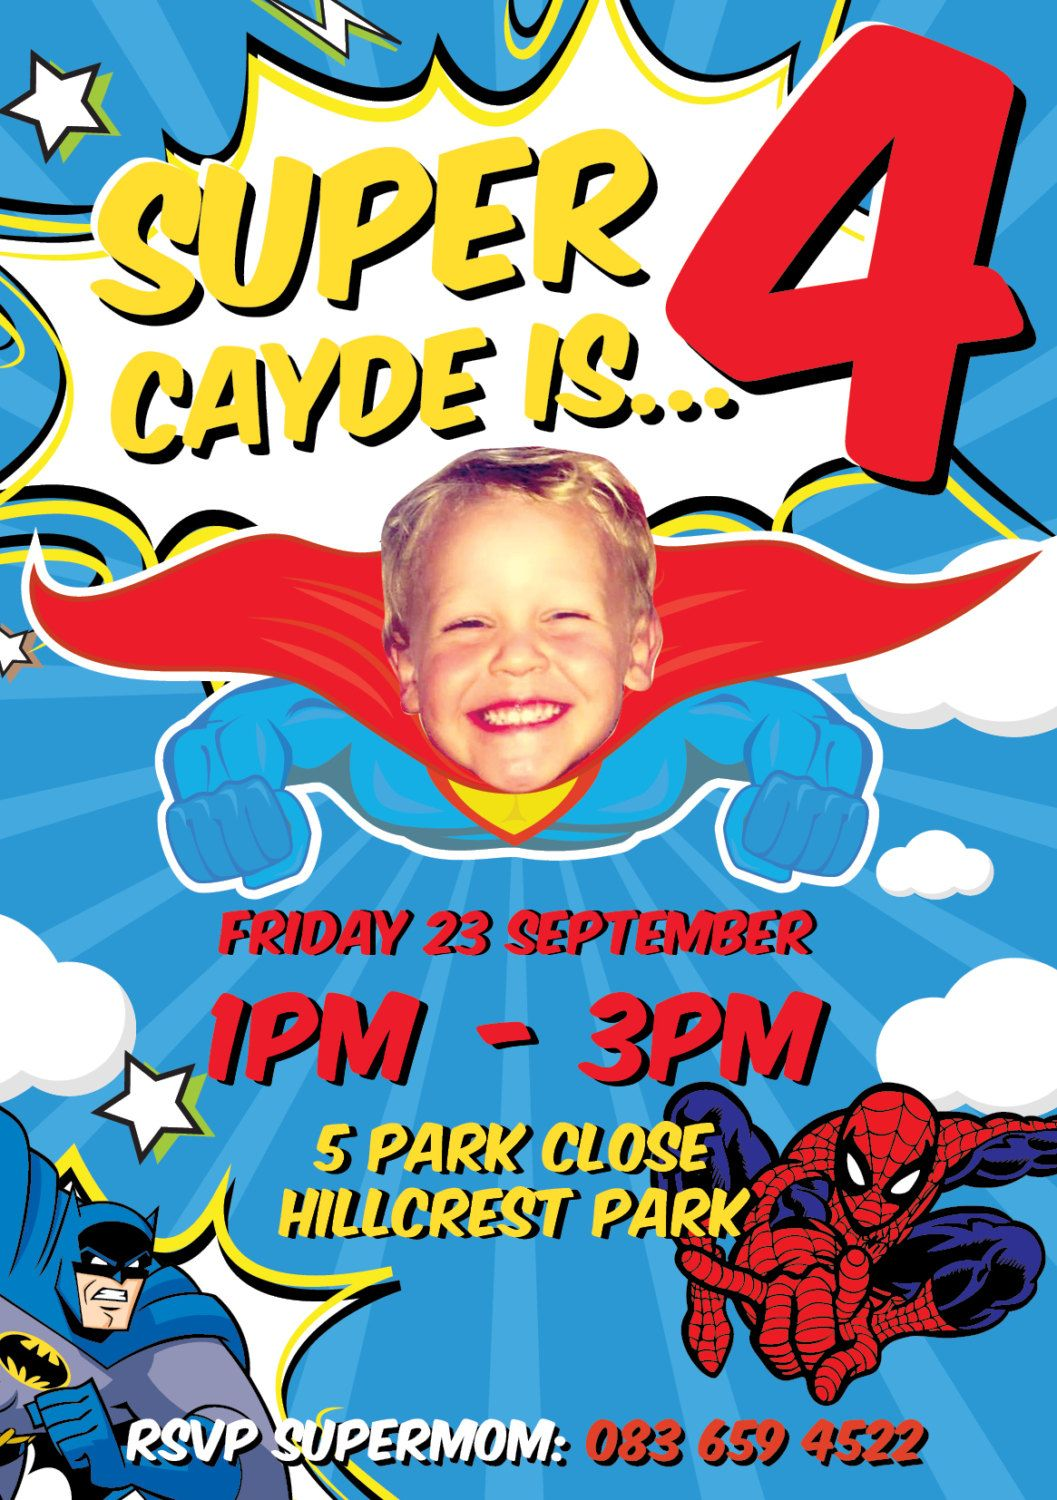 Super hero party invitation by ABrandAdventure on Etsy